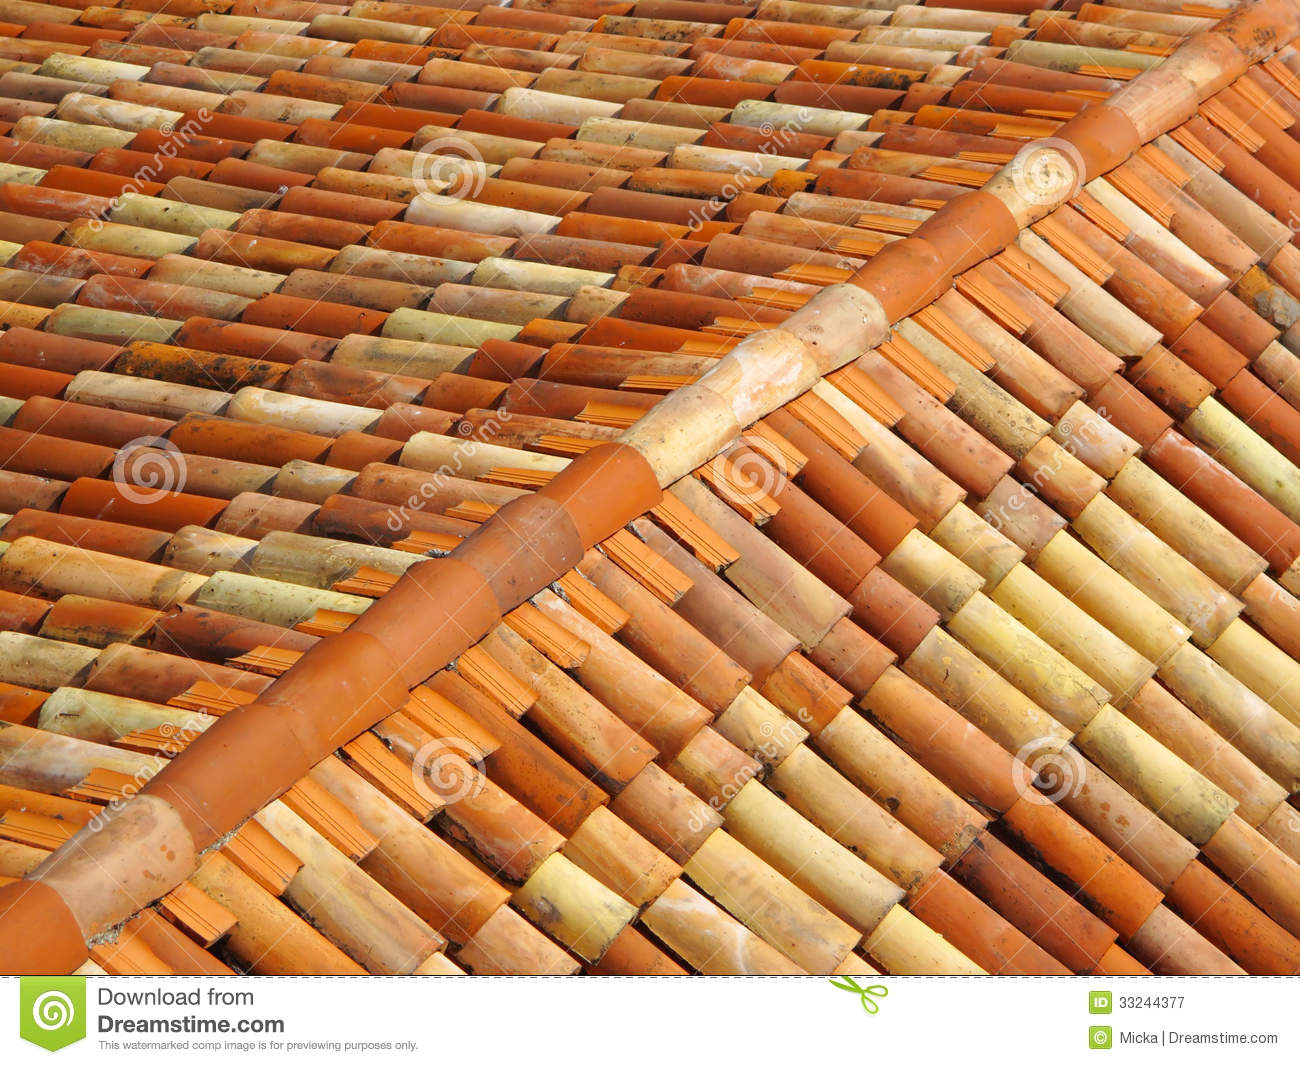 Roof Tiles With Ridge Tiles On Top Royalty Free Stock Photography.